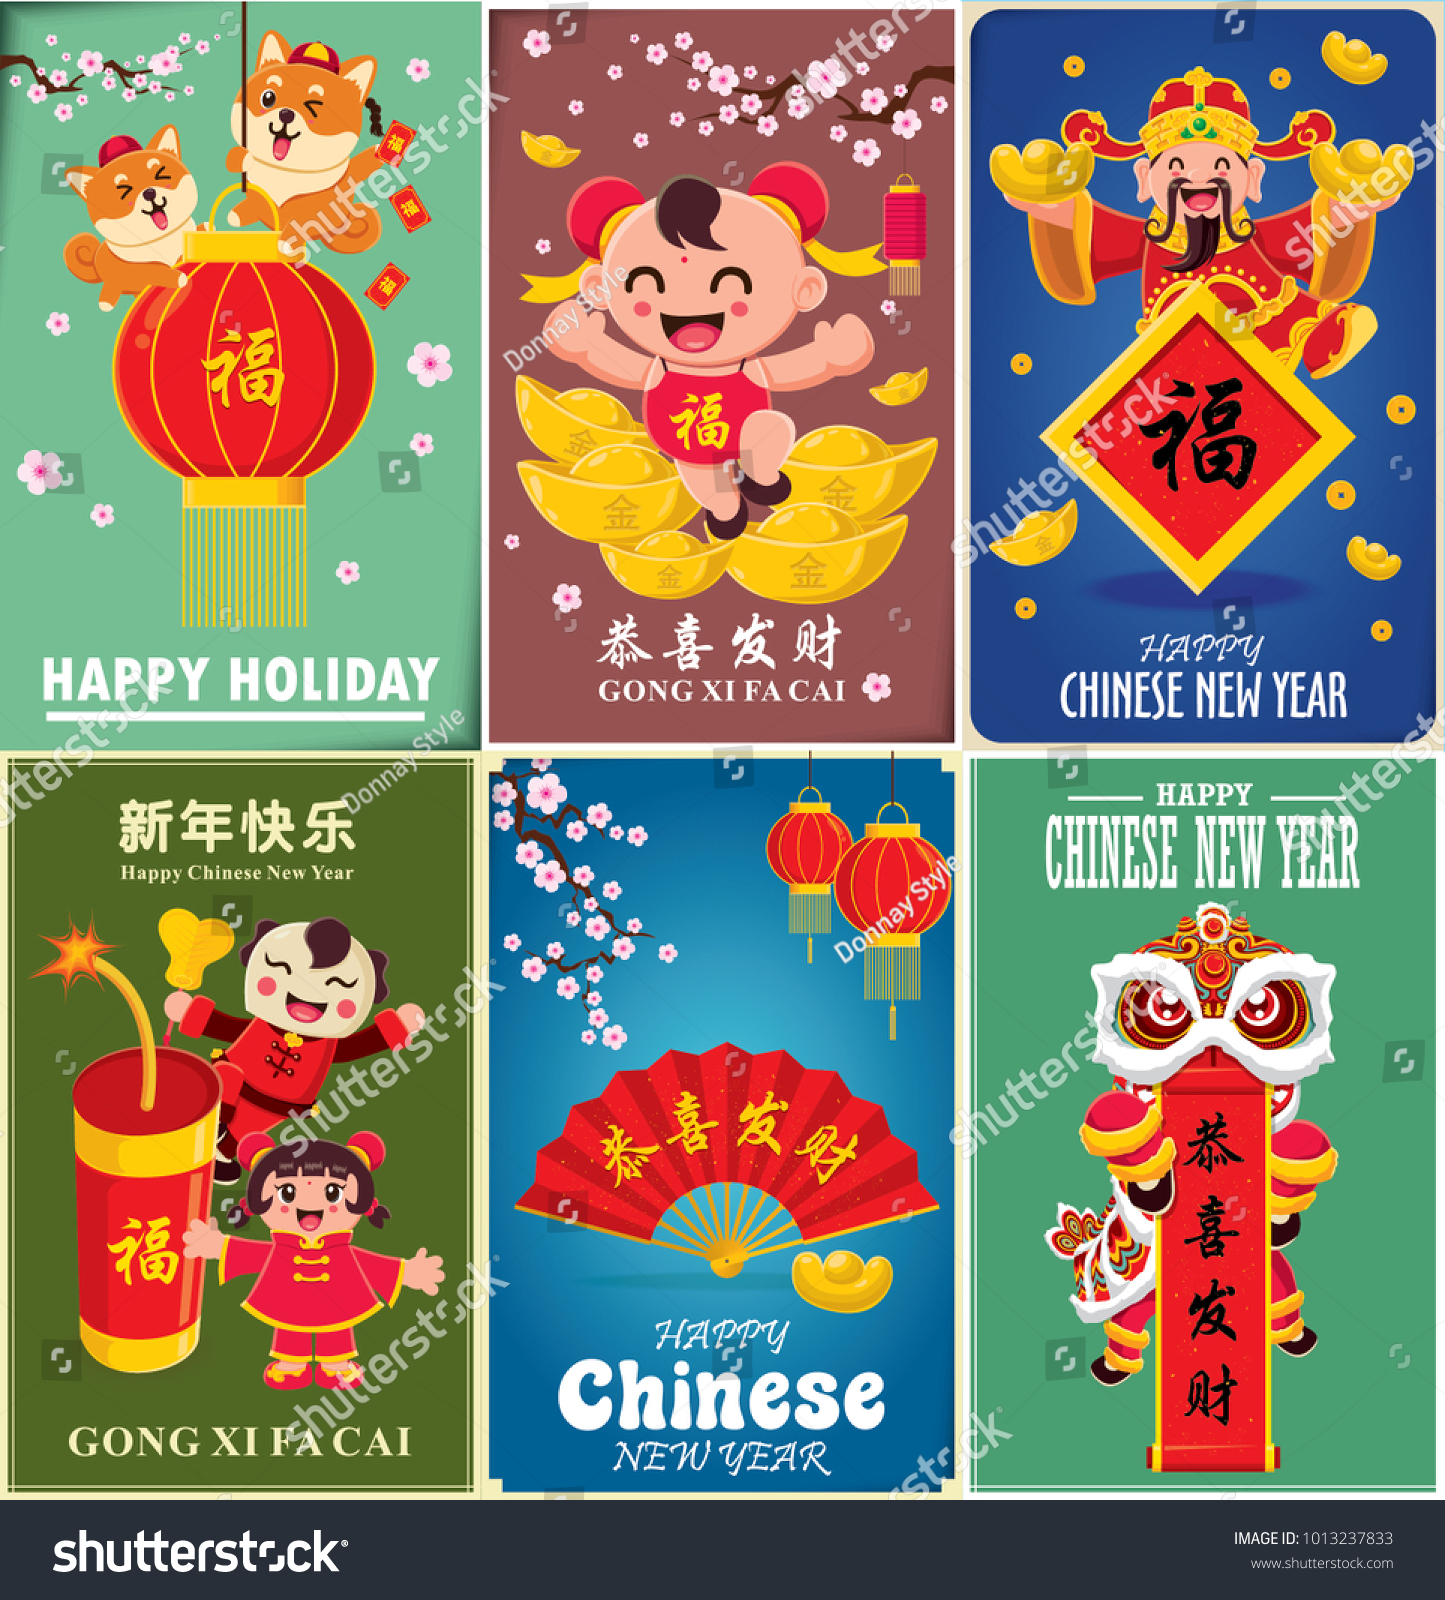 vintage chinese new year poster design with god of wealth lion dance kids and